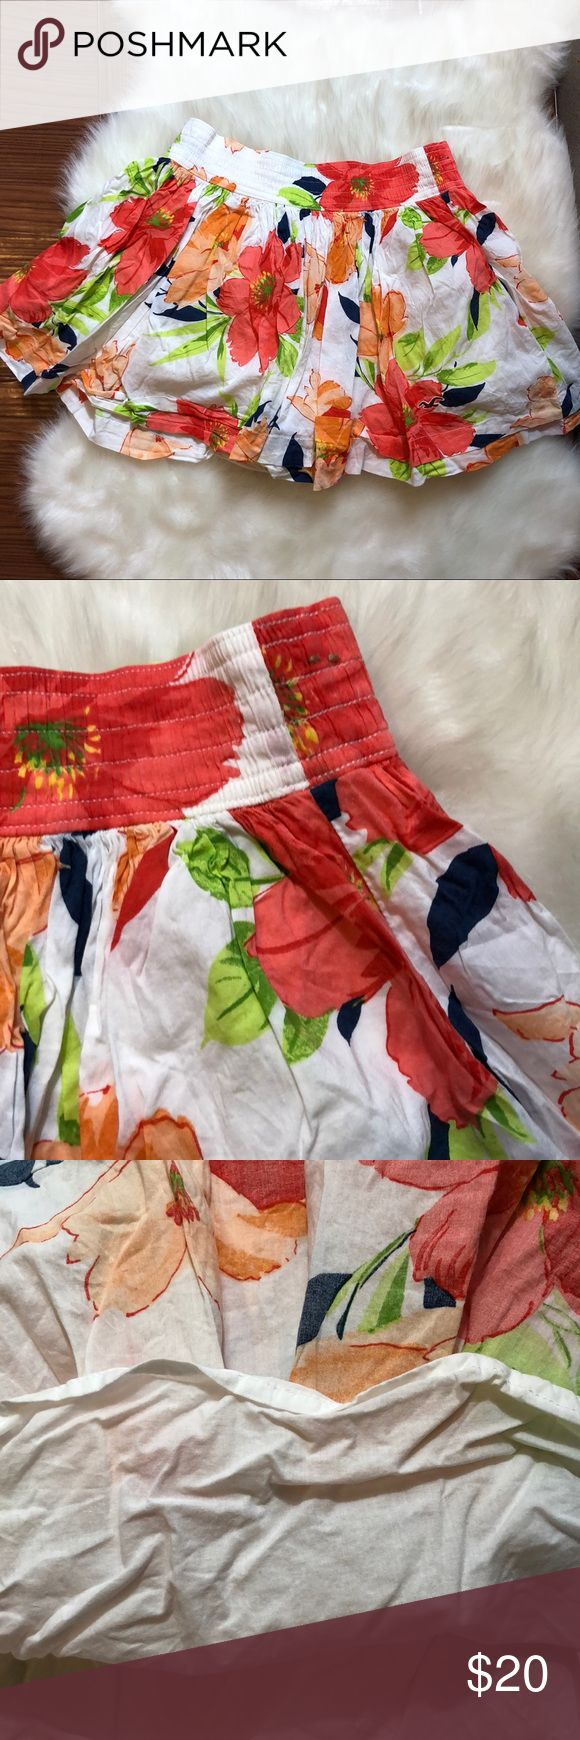 """HOLLISTER White Floral Mini Skirt Light and breezy fully lined white mini skirt with orange and red flower floral print by Hollister.  Materials: cotton viscose Length 13""""  Waist (across) 13""""  Excellent used condition. No flaws! Hollister Skirts Mini"""